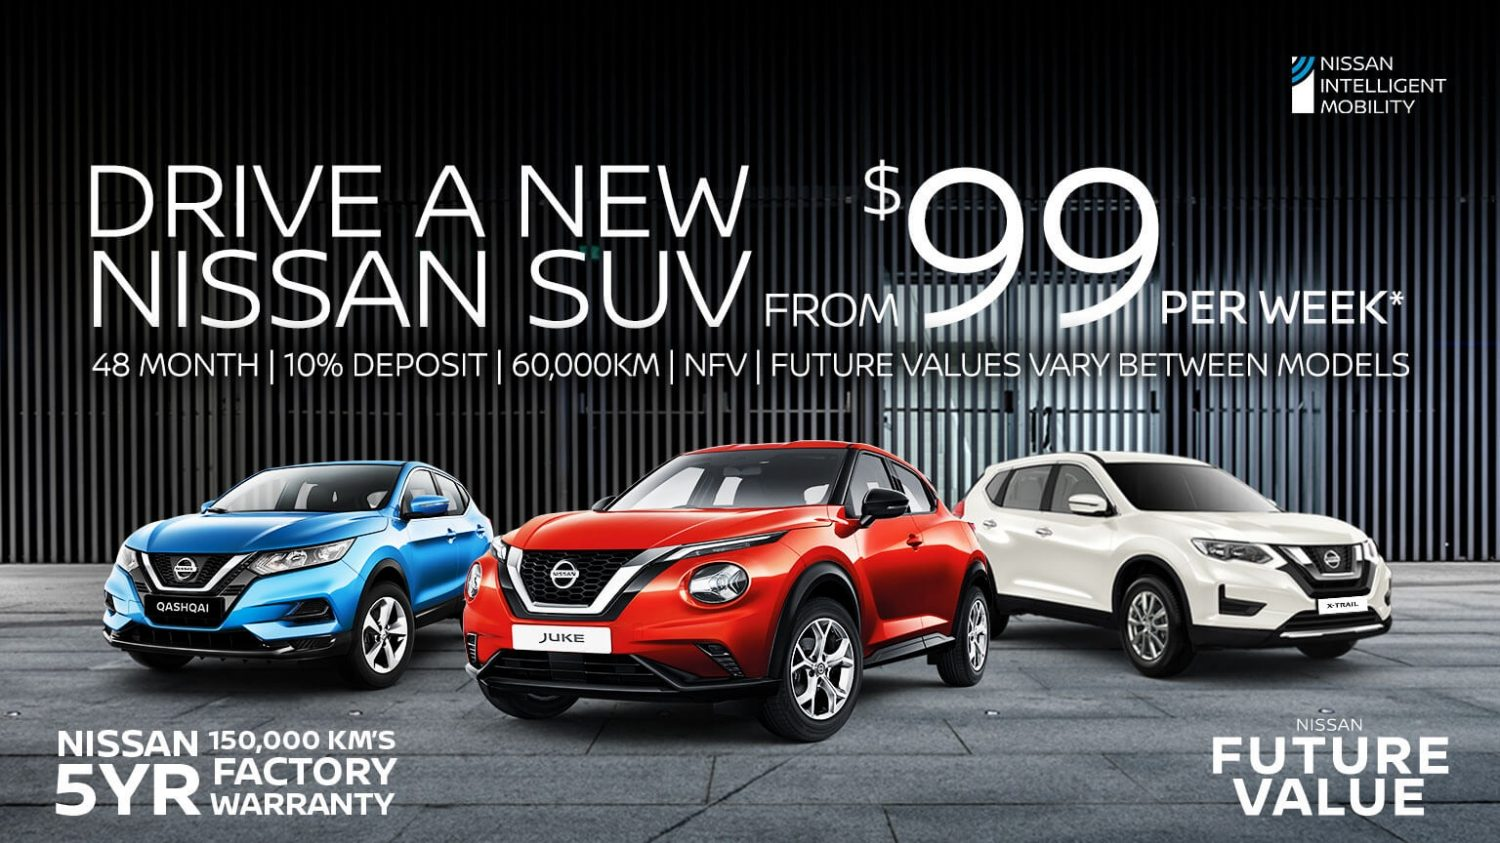 Nissan Future Value SUVs